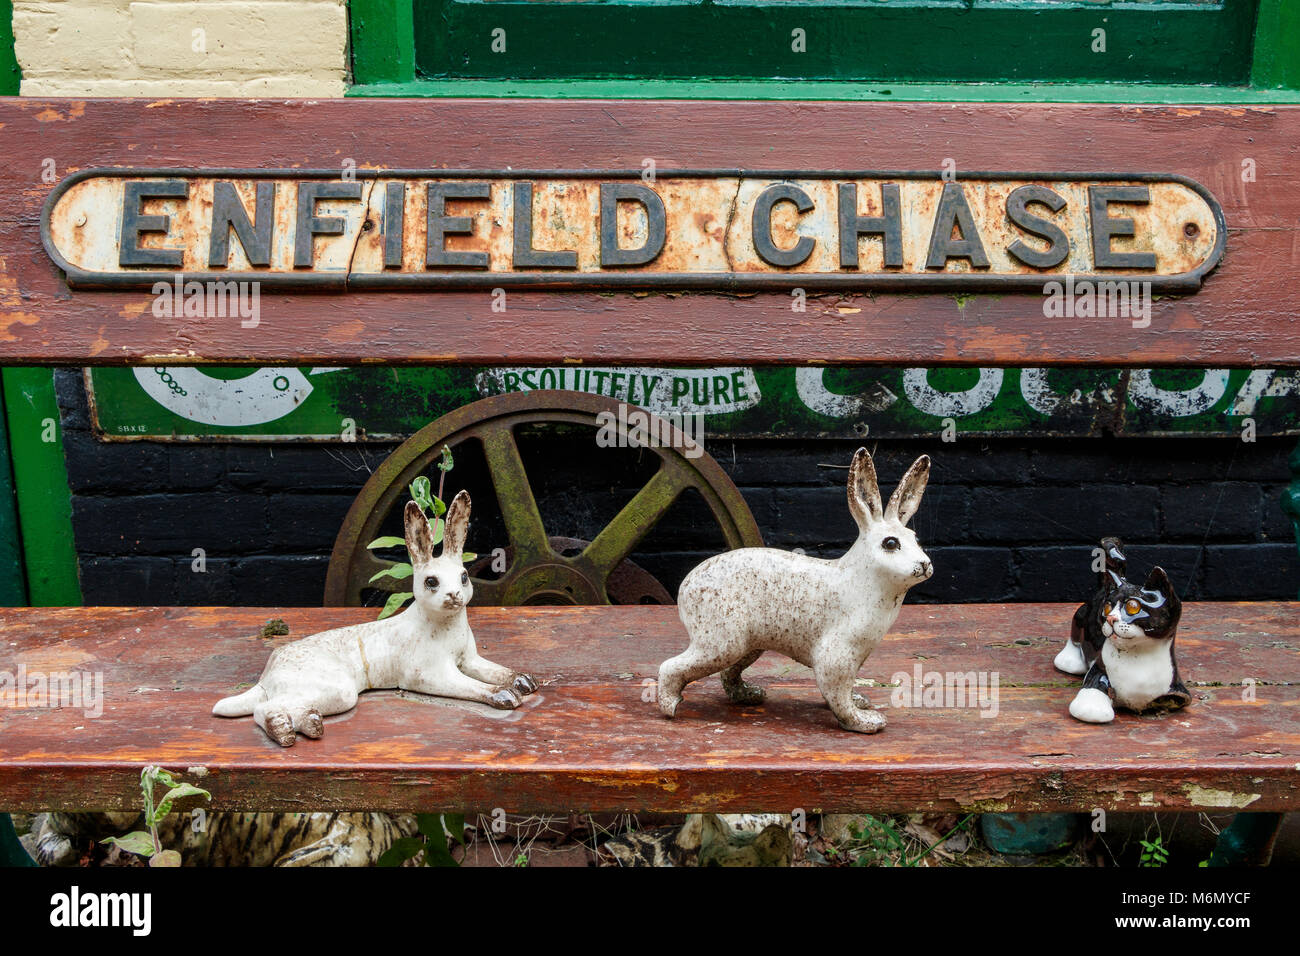 A collection of Winstanley pottery cats and rabbits arranged outdoors. North Walsham, Norfolk, UK. - Stock Image